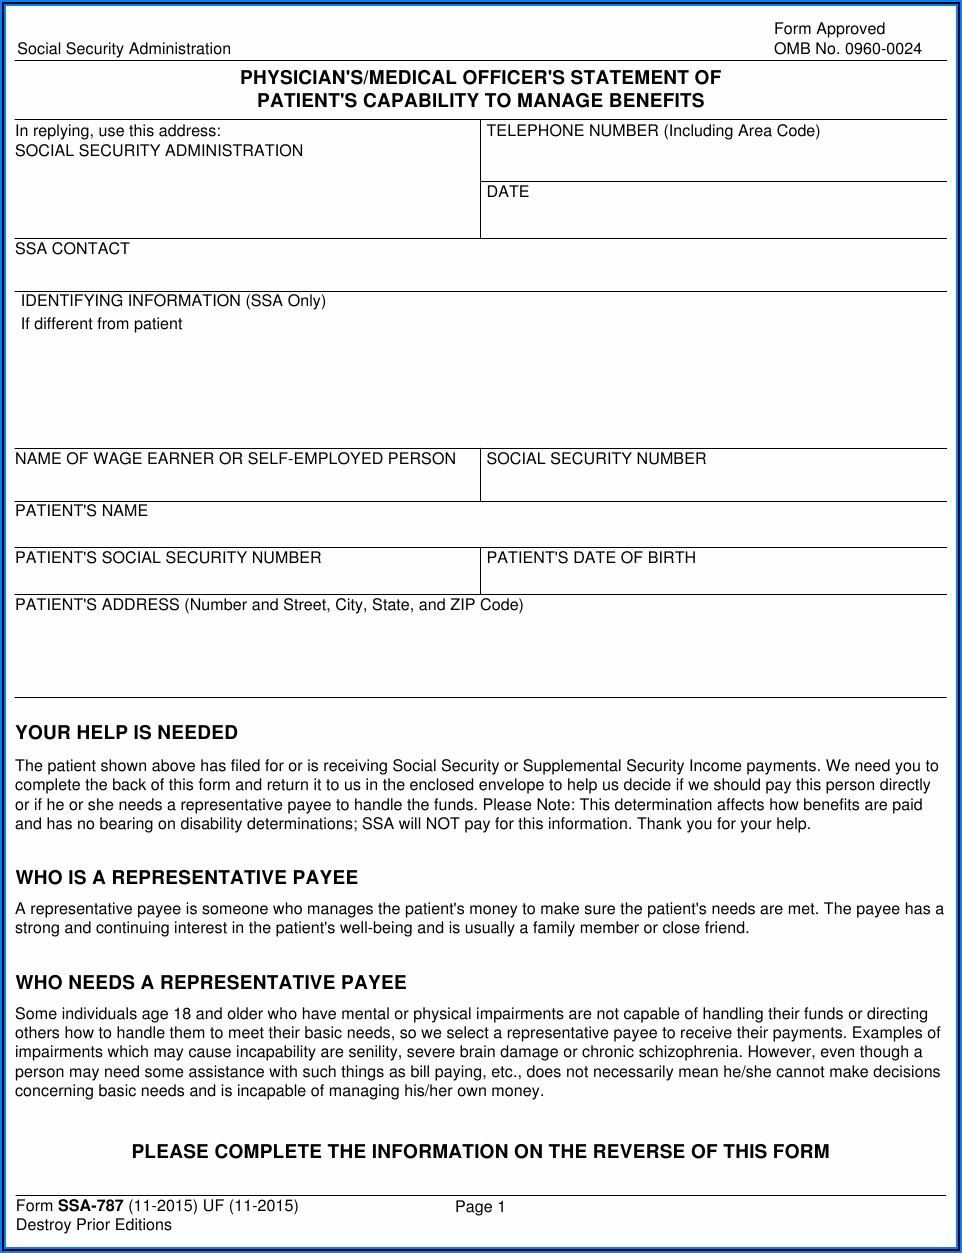 Social Security Disability Forms For Physicians